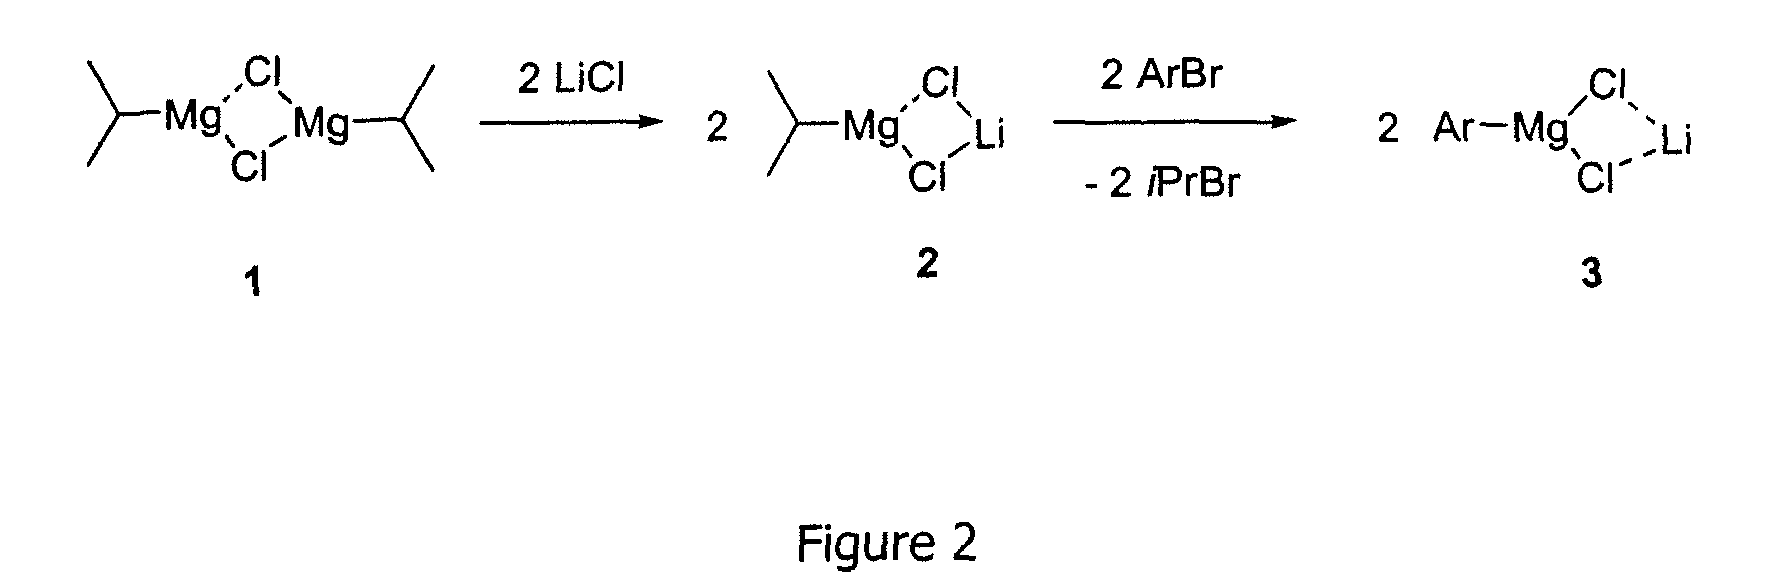 grignard metathesis method  · universal grignard metathesis polymerization in a first method, a grignard reagent is preformed from for example alkyl halide and magnesium.